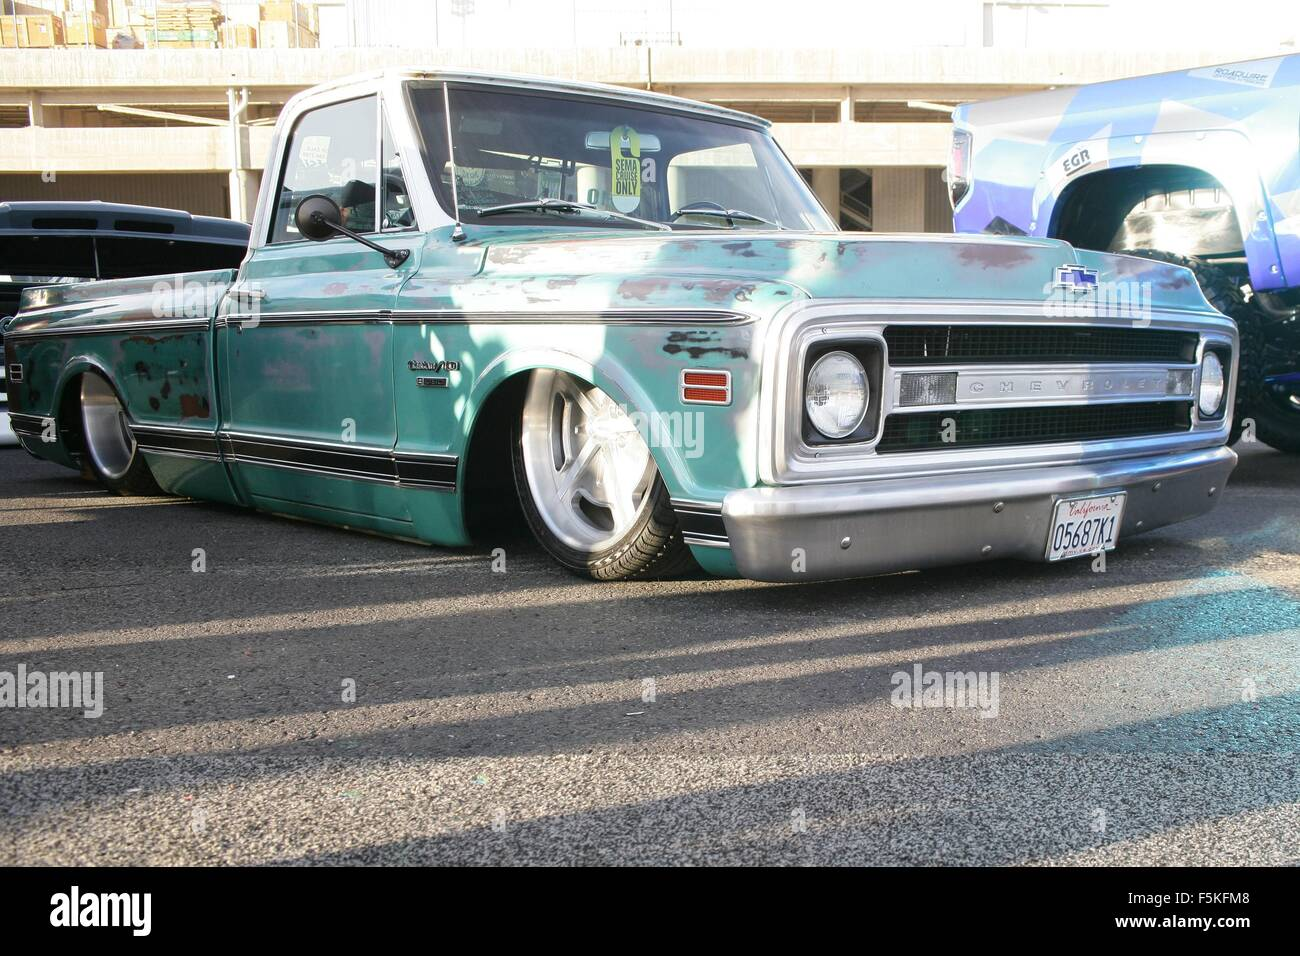 Chevy Las Vegas >> Las Vegas Nv Usa 5th Nov 2015 Custom 1970 Chevy C10 Truck By